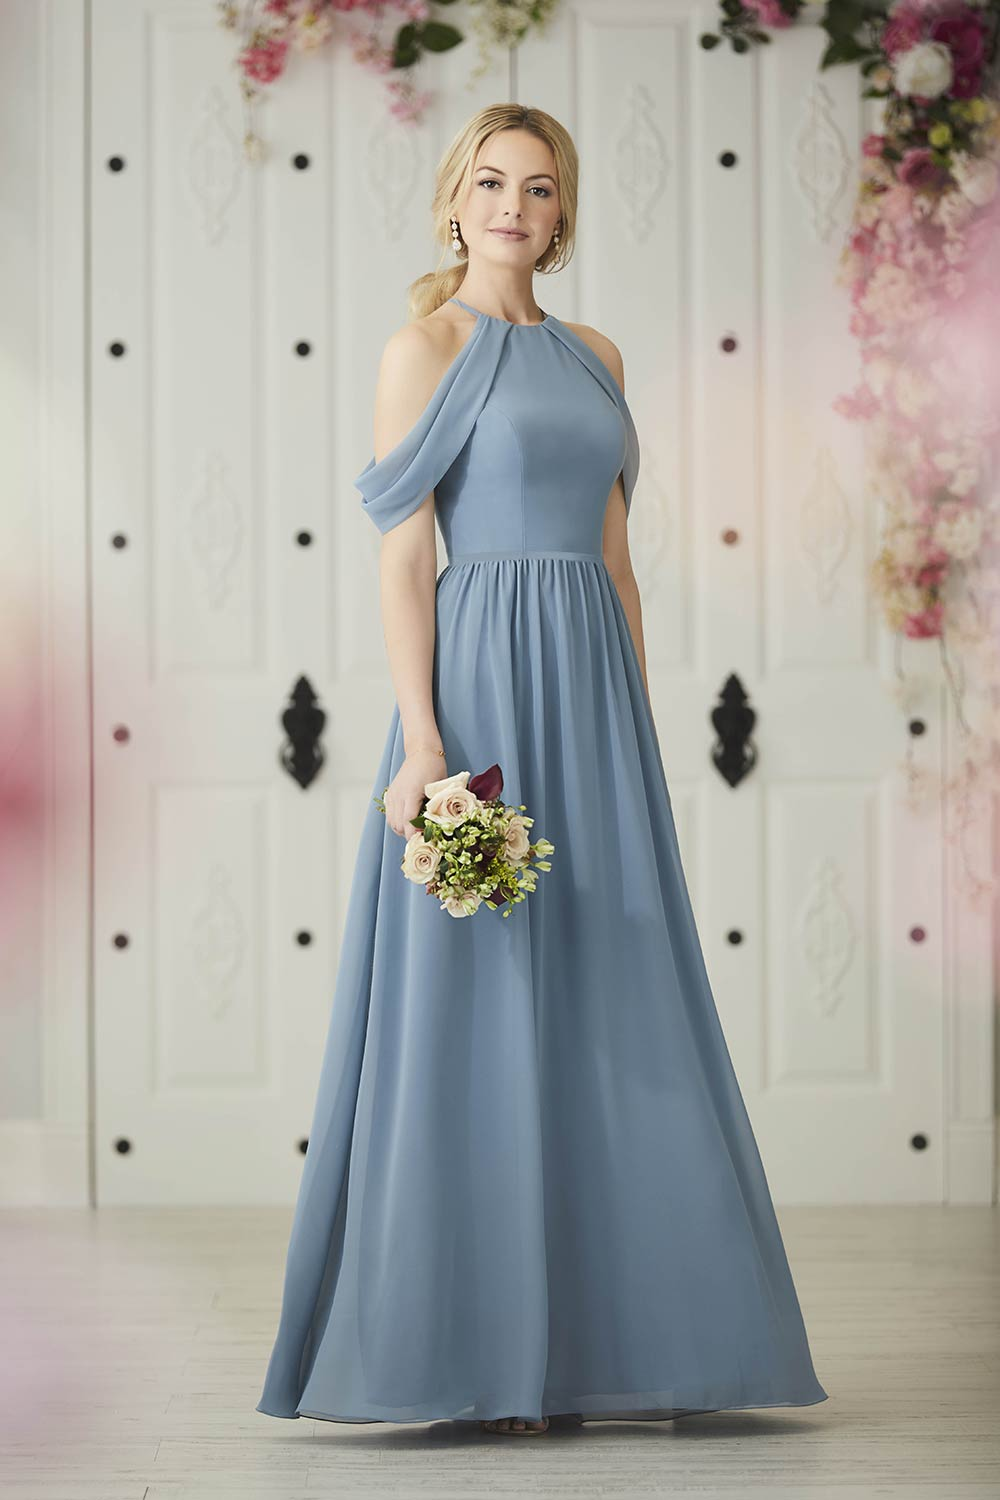 bridesmaid-dresses-jacquelin-bridals-canada-27301